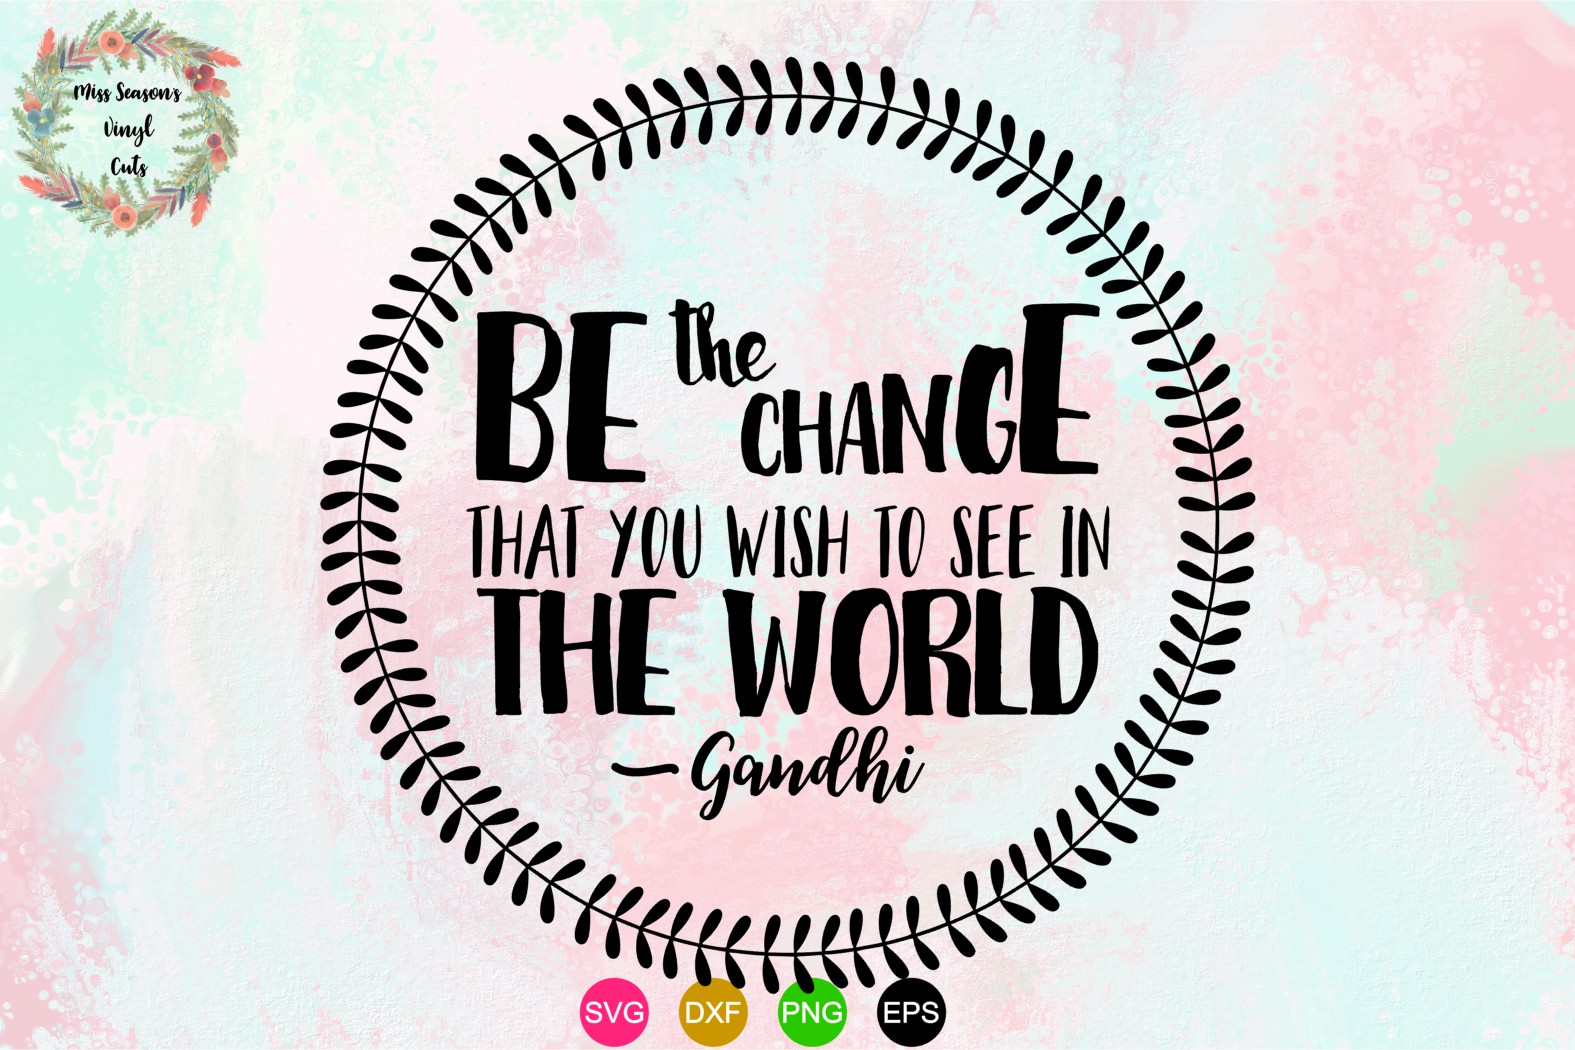 Be the change - Gandhi SVG , Dxf, Eps, Png example image 1